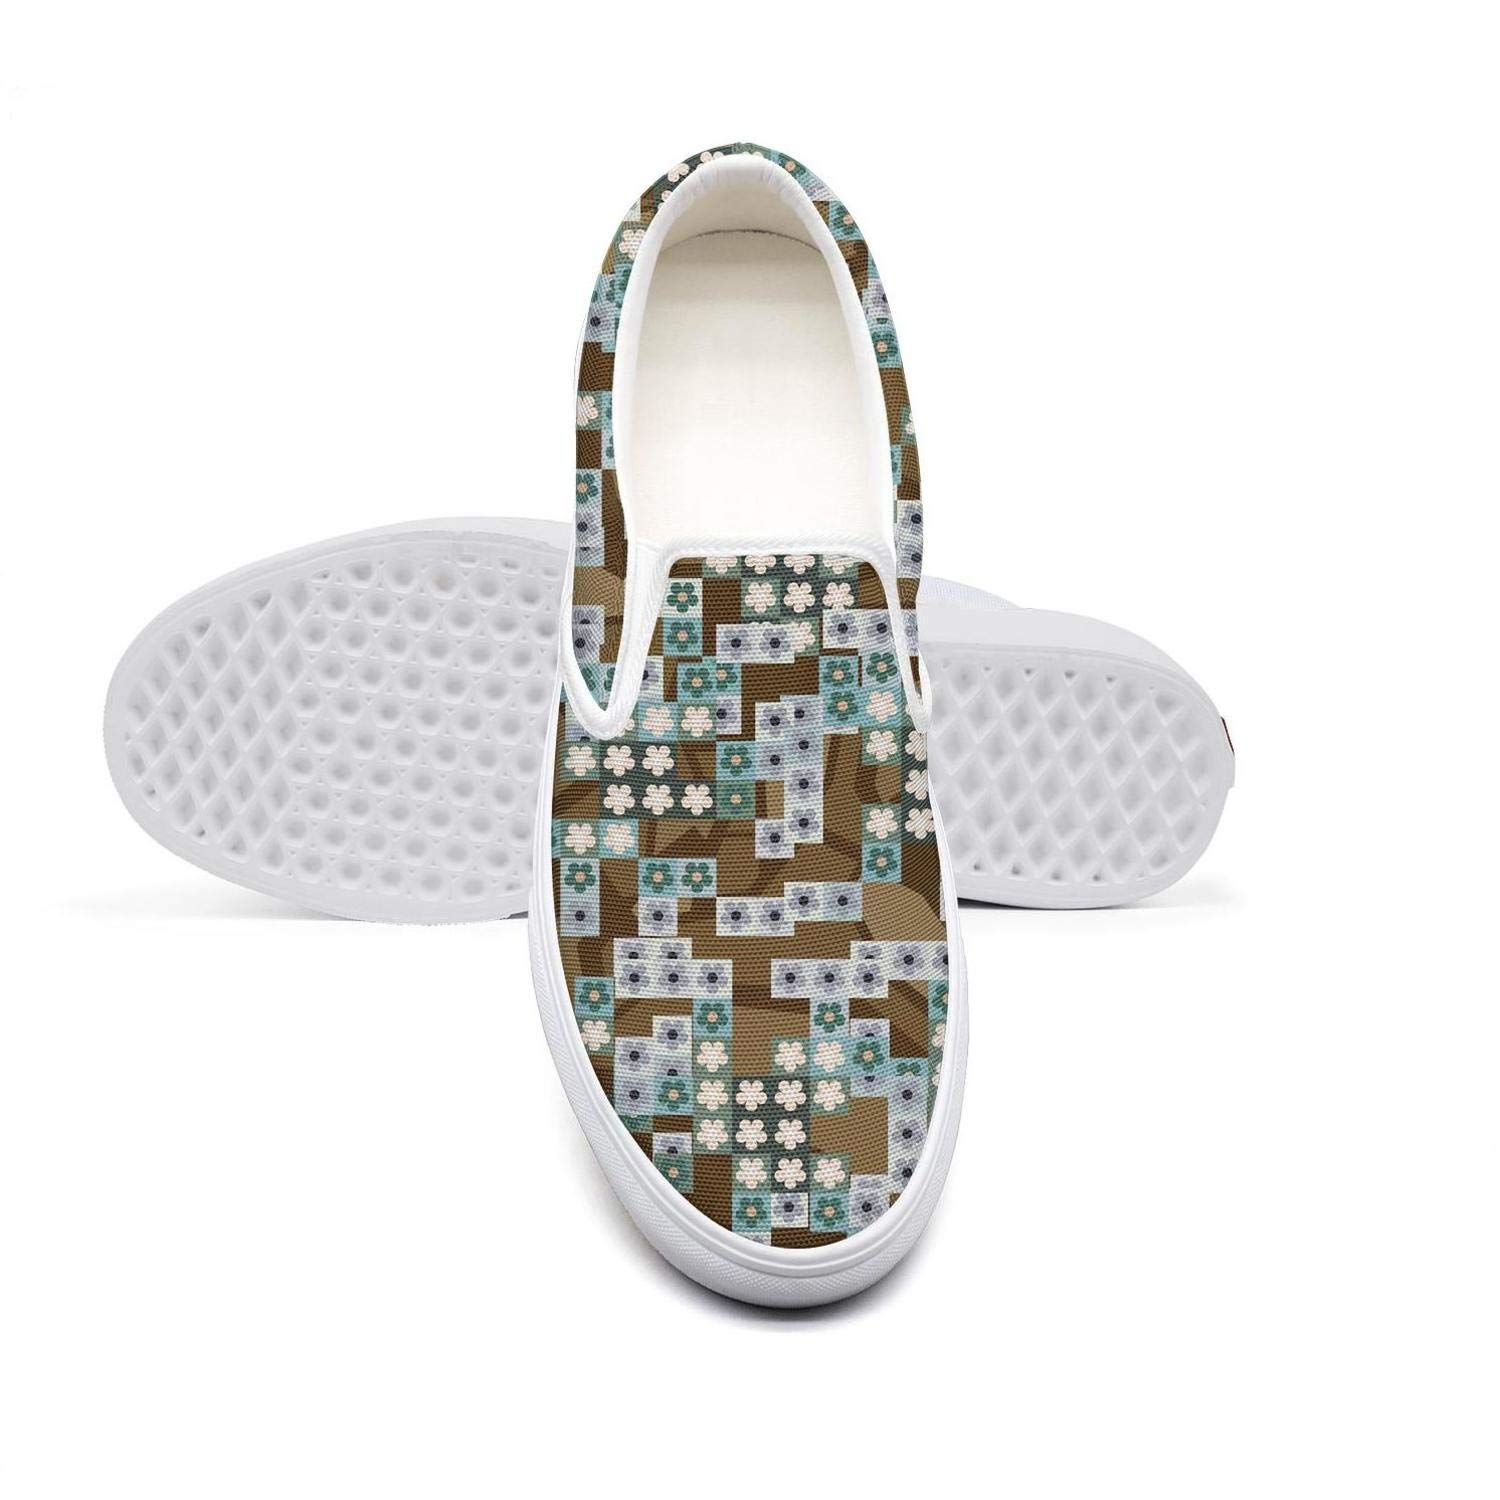 KJGDFS Urban Camouflage Watercolor Flat Shoes Limited Edition Slip ons for Boys